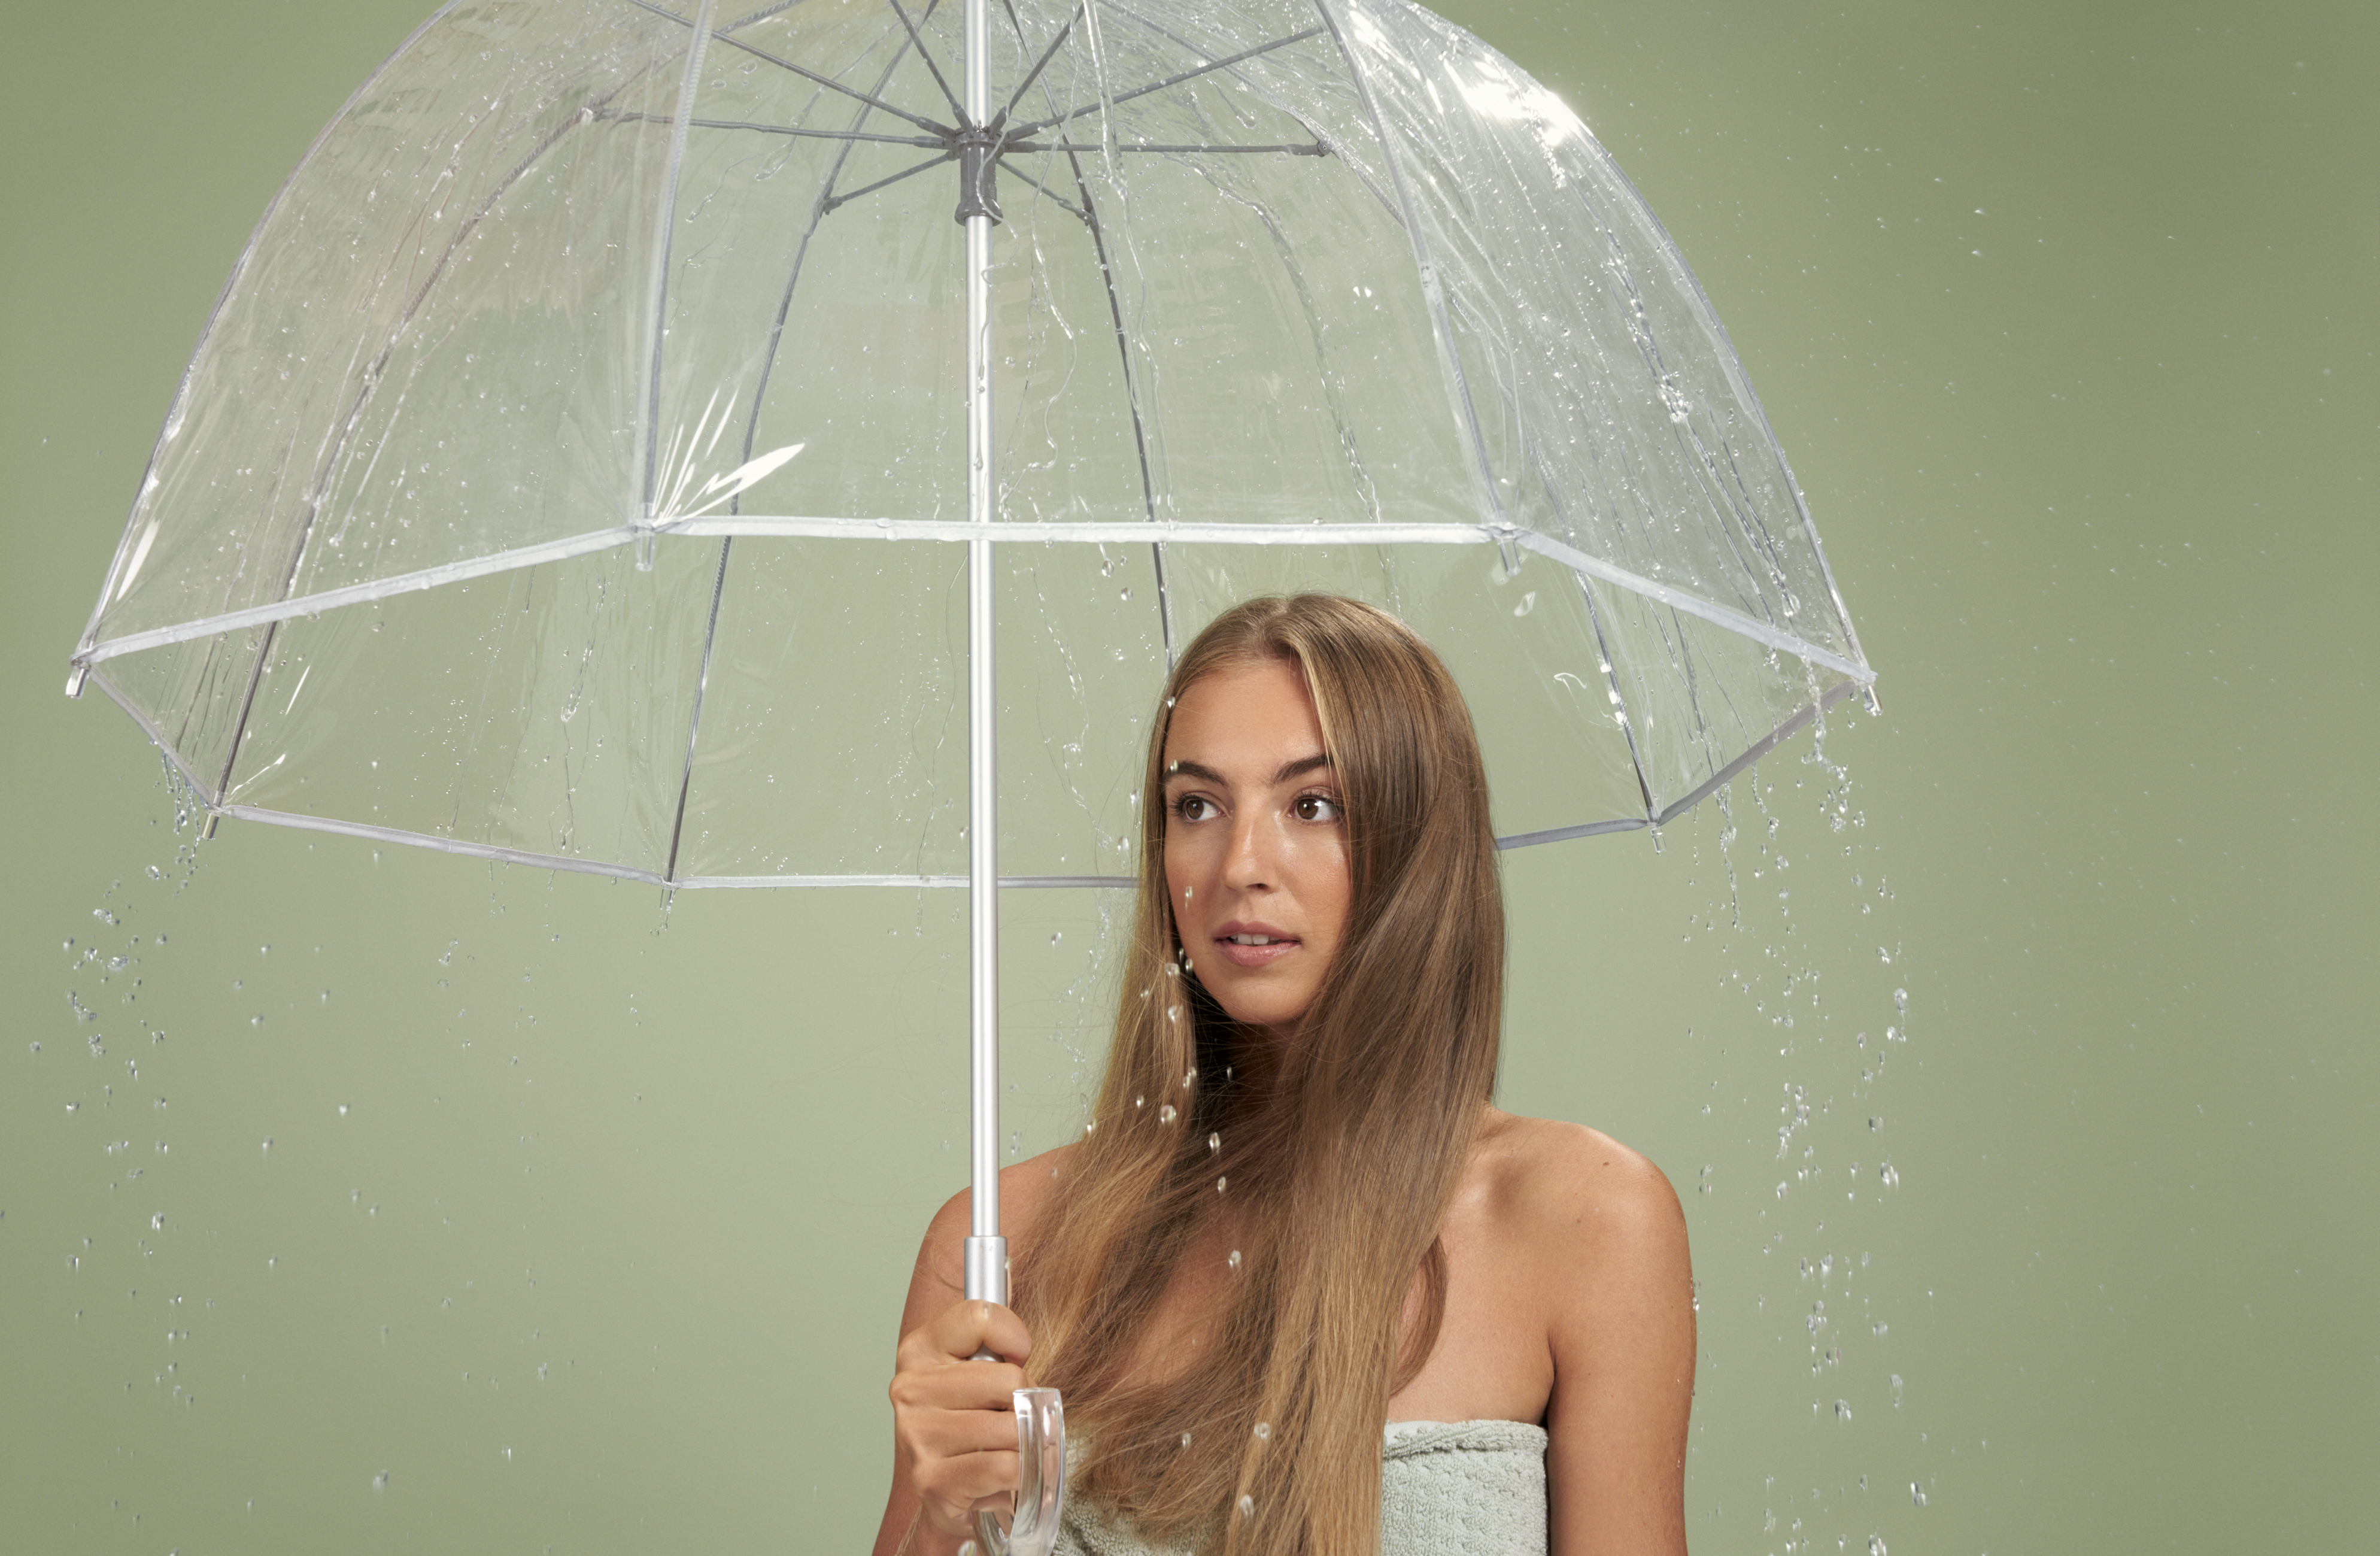 woman with long blonde hair holding a clear umbrella on a green background while rain falls down on her